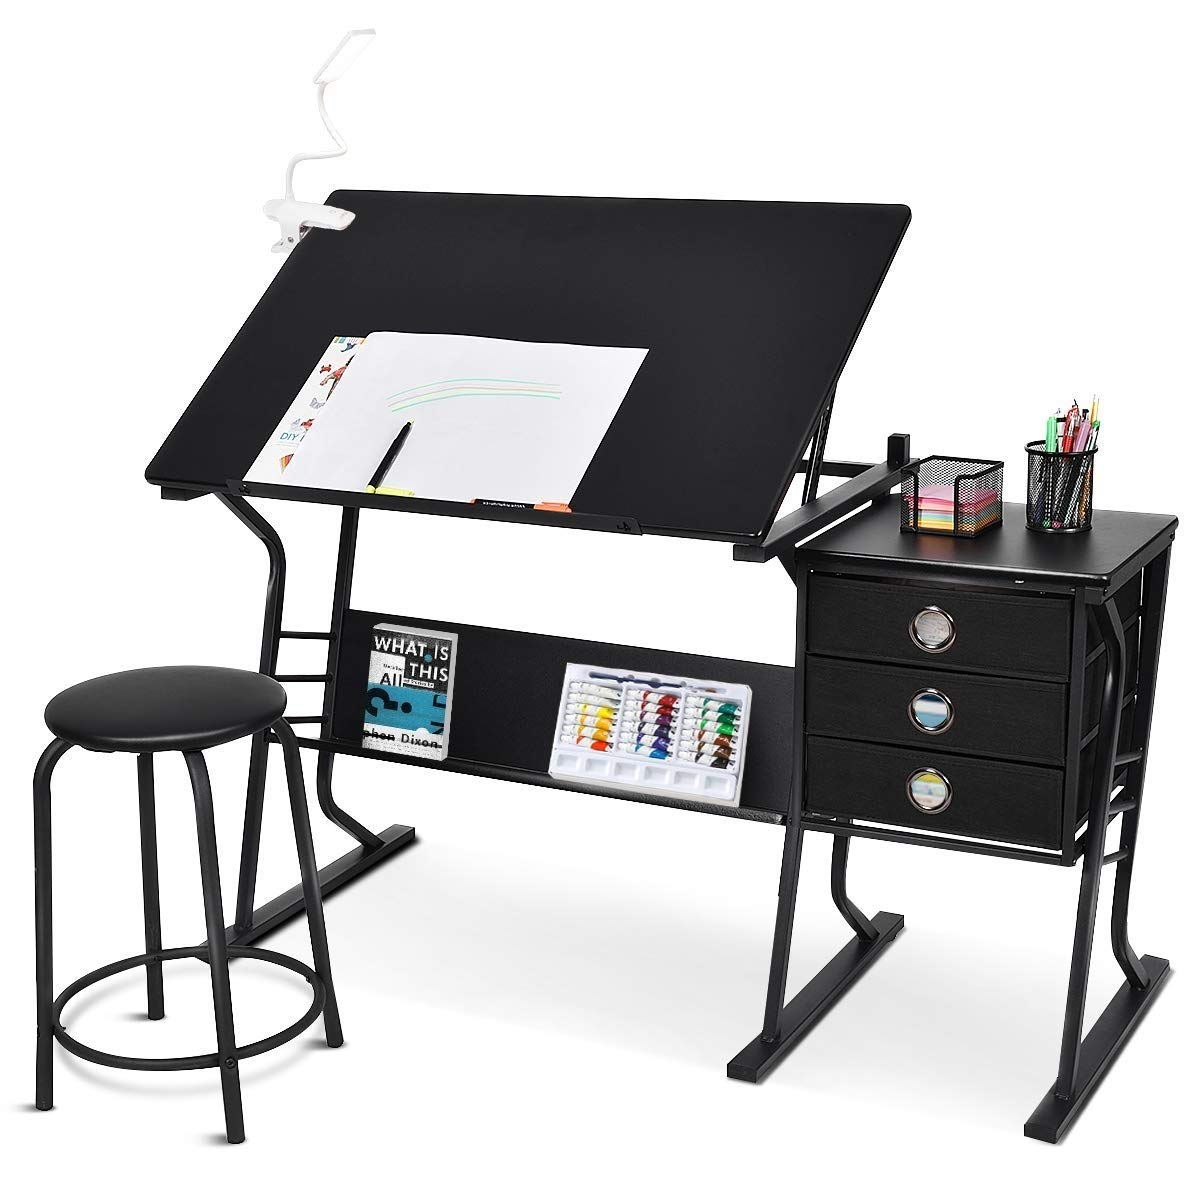 Black Adjustable Drafting Table with Stool & Side Drawers Desktop Artist Base Desk with Comfortable Chair